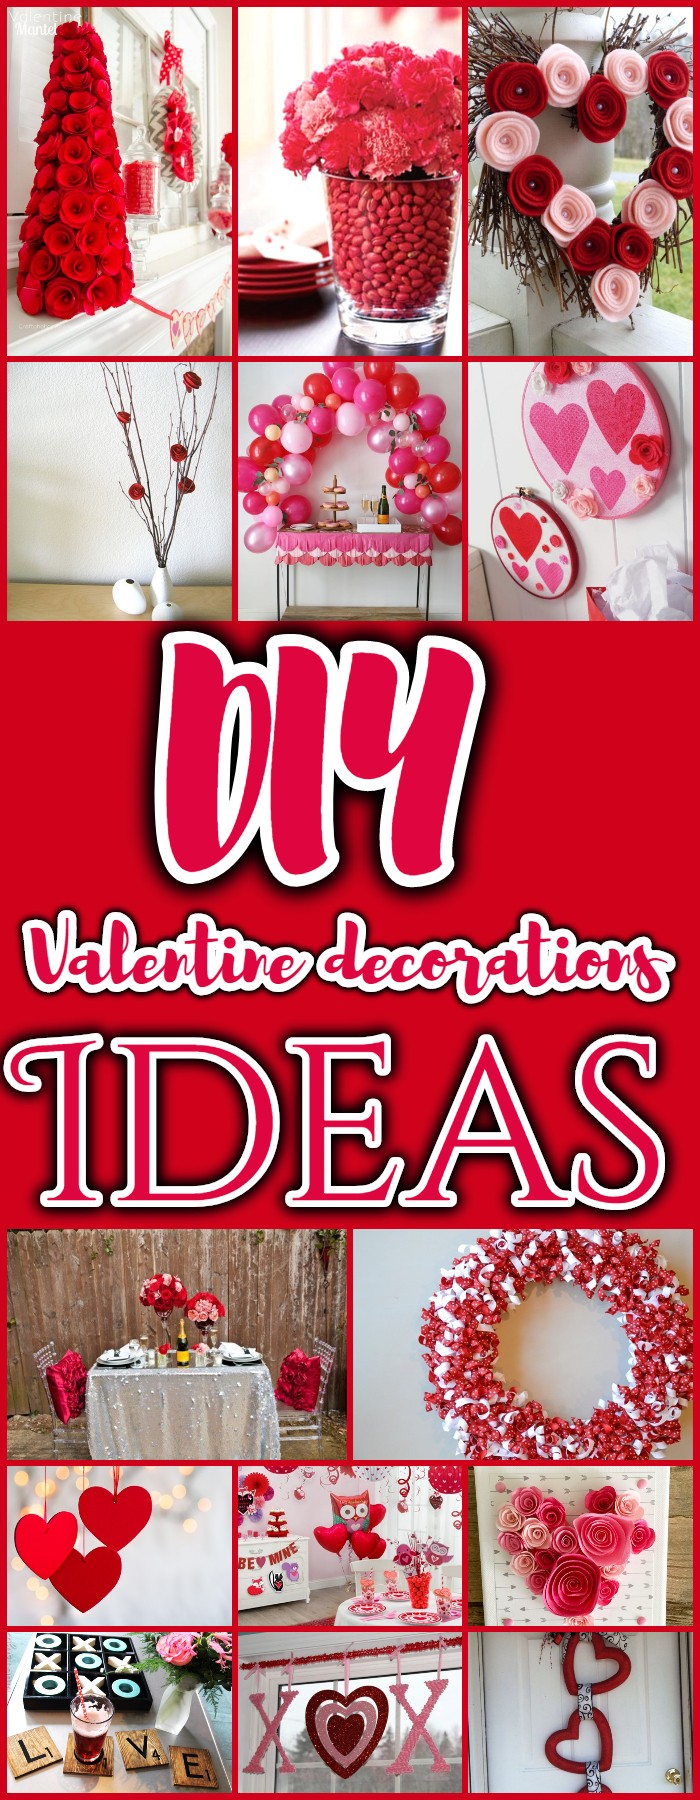 DIY Valentine decorations